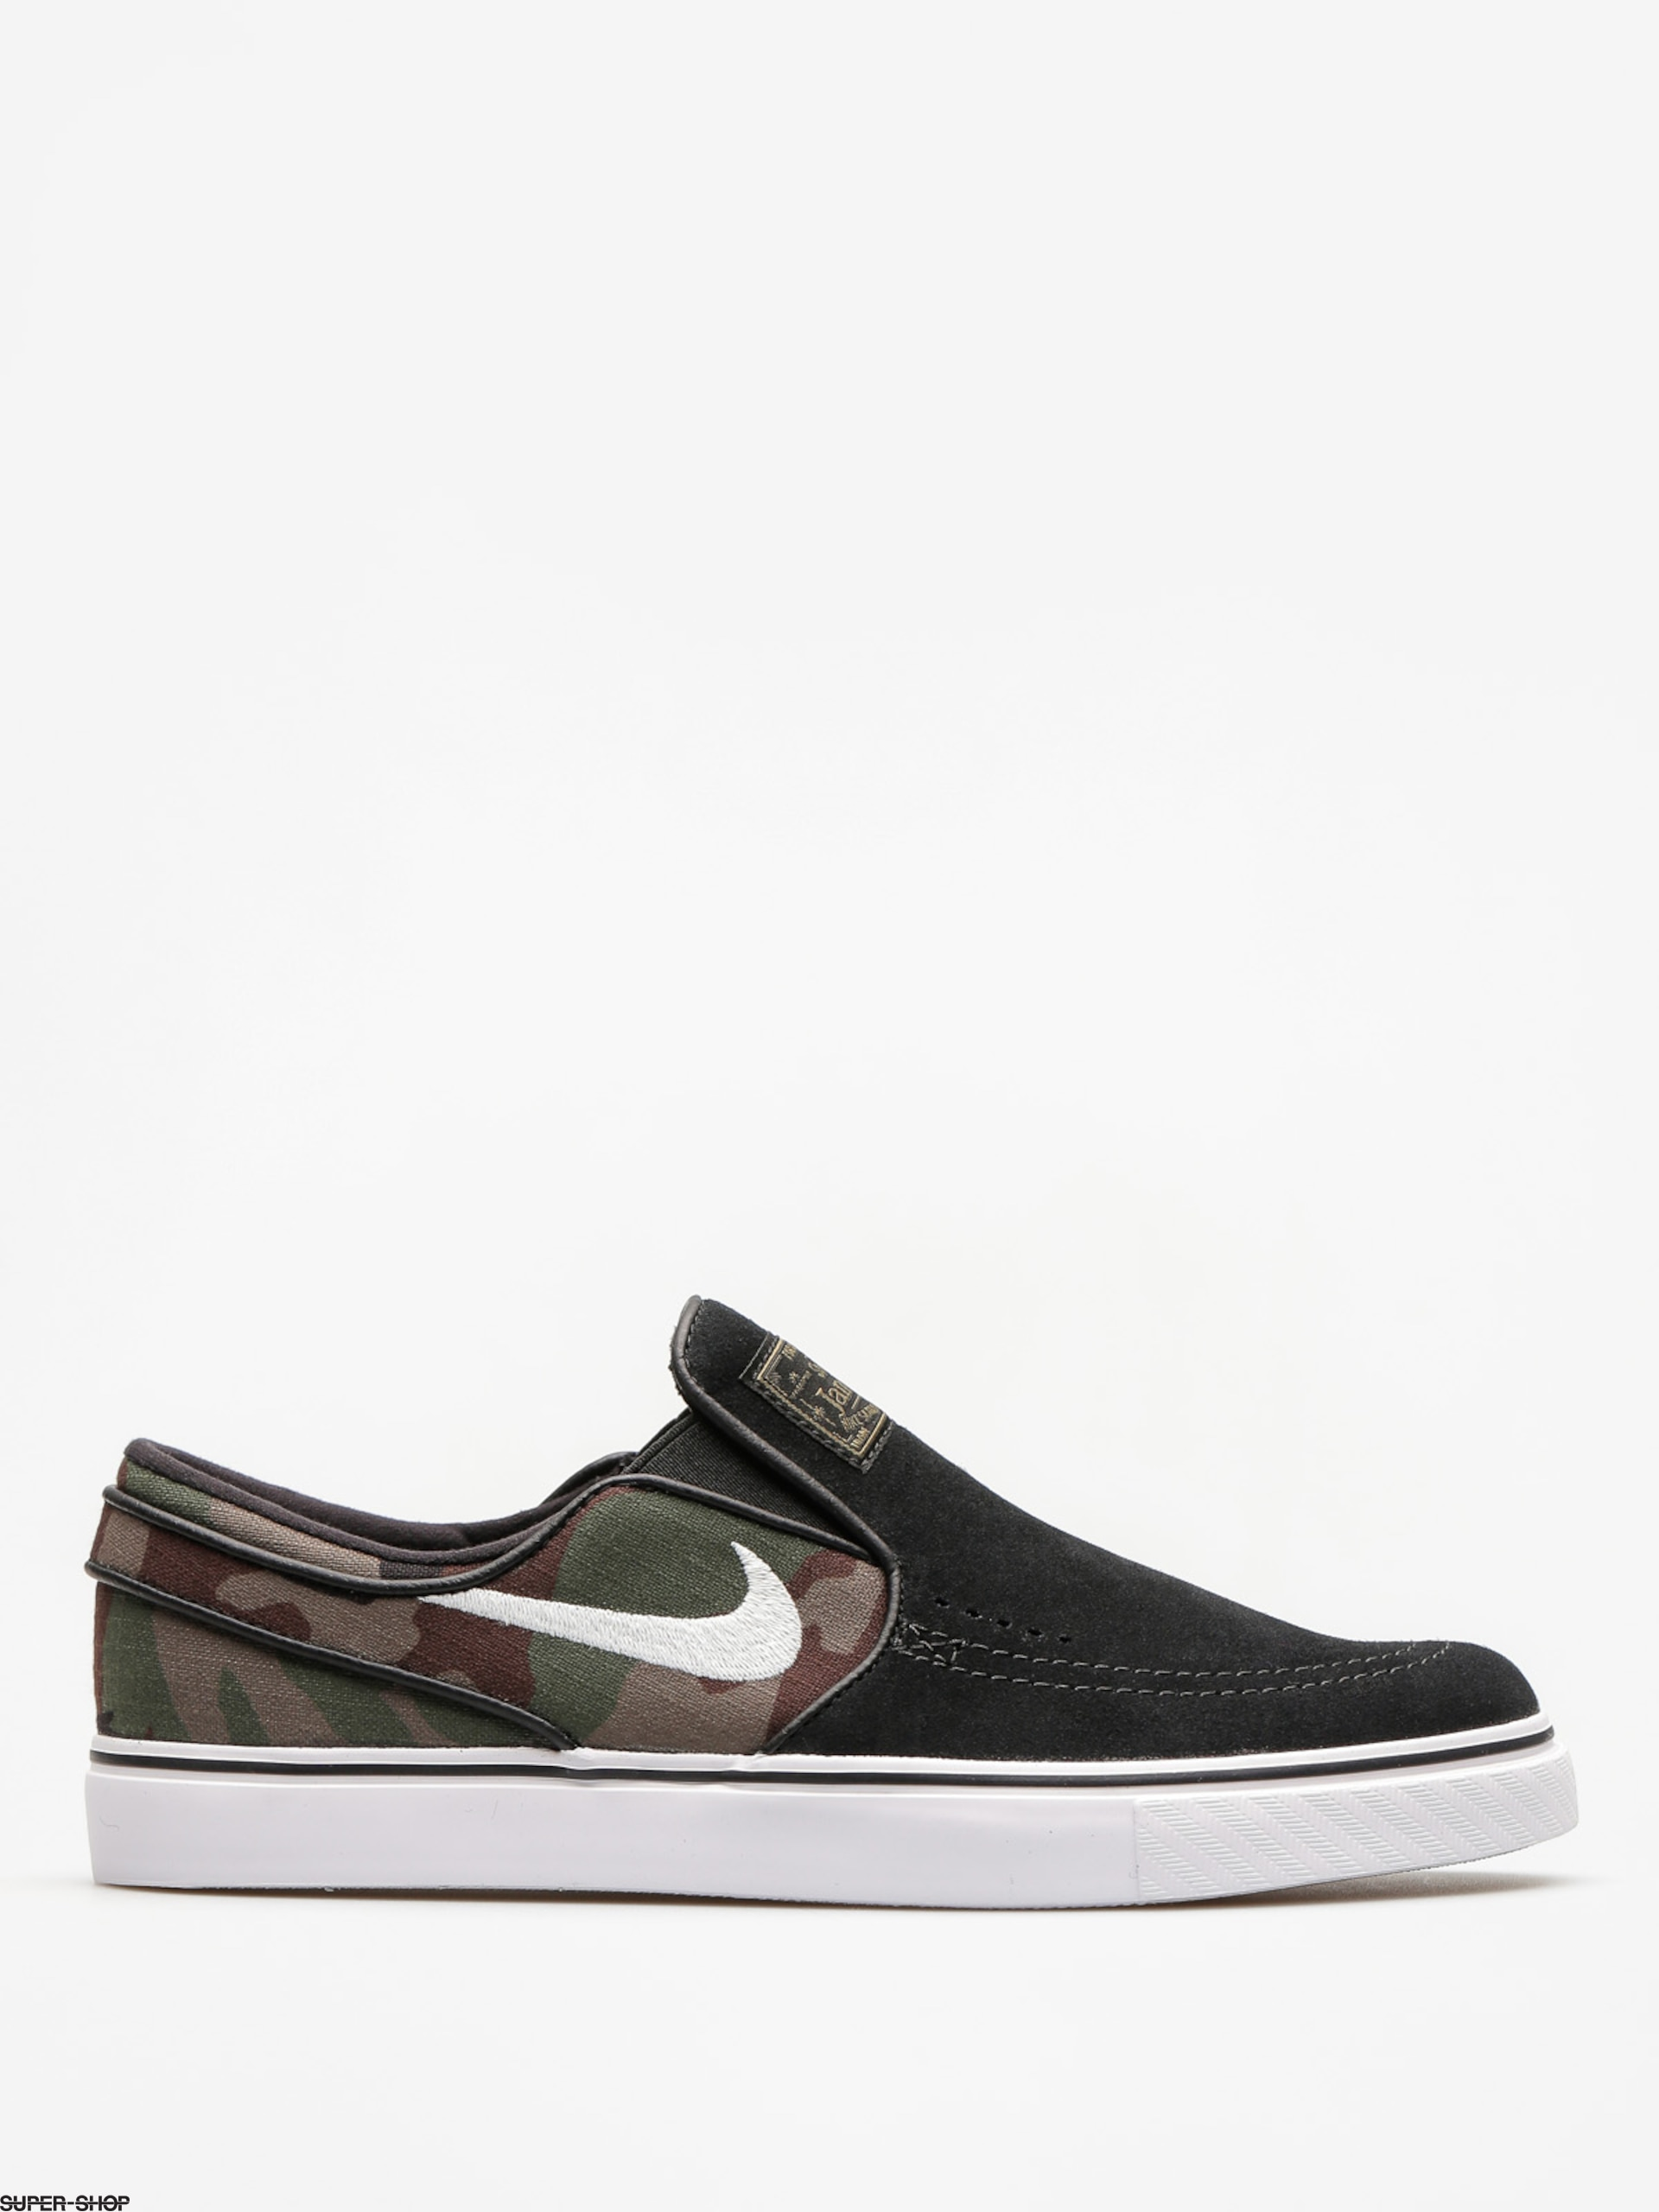 Nike SB Shoes Sb Zoom Stefan Janoski Slip (black/white multi color)